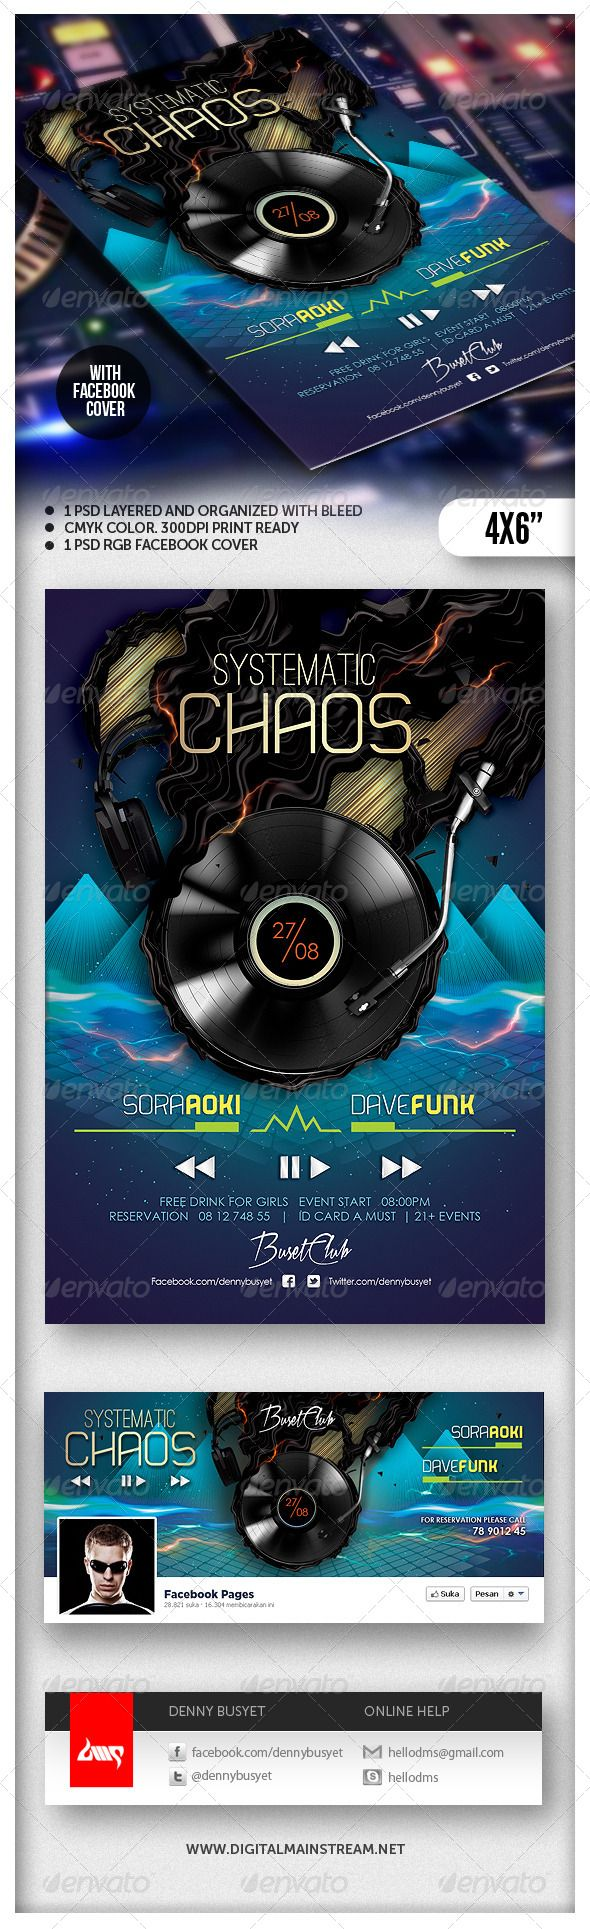 Systematic chaos nightclub flyer template adobe for Adobe photoshop brochure templates